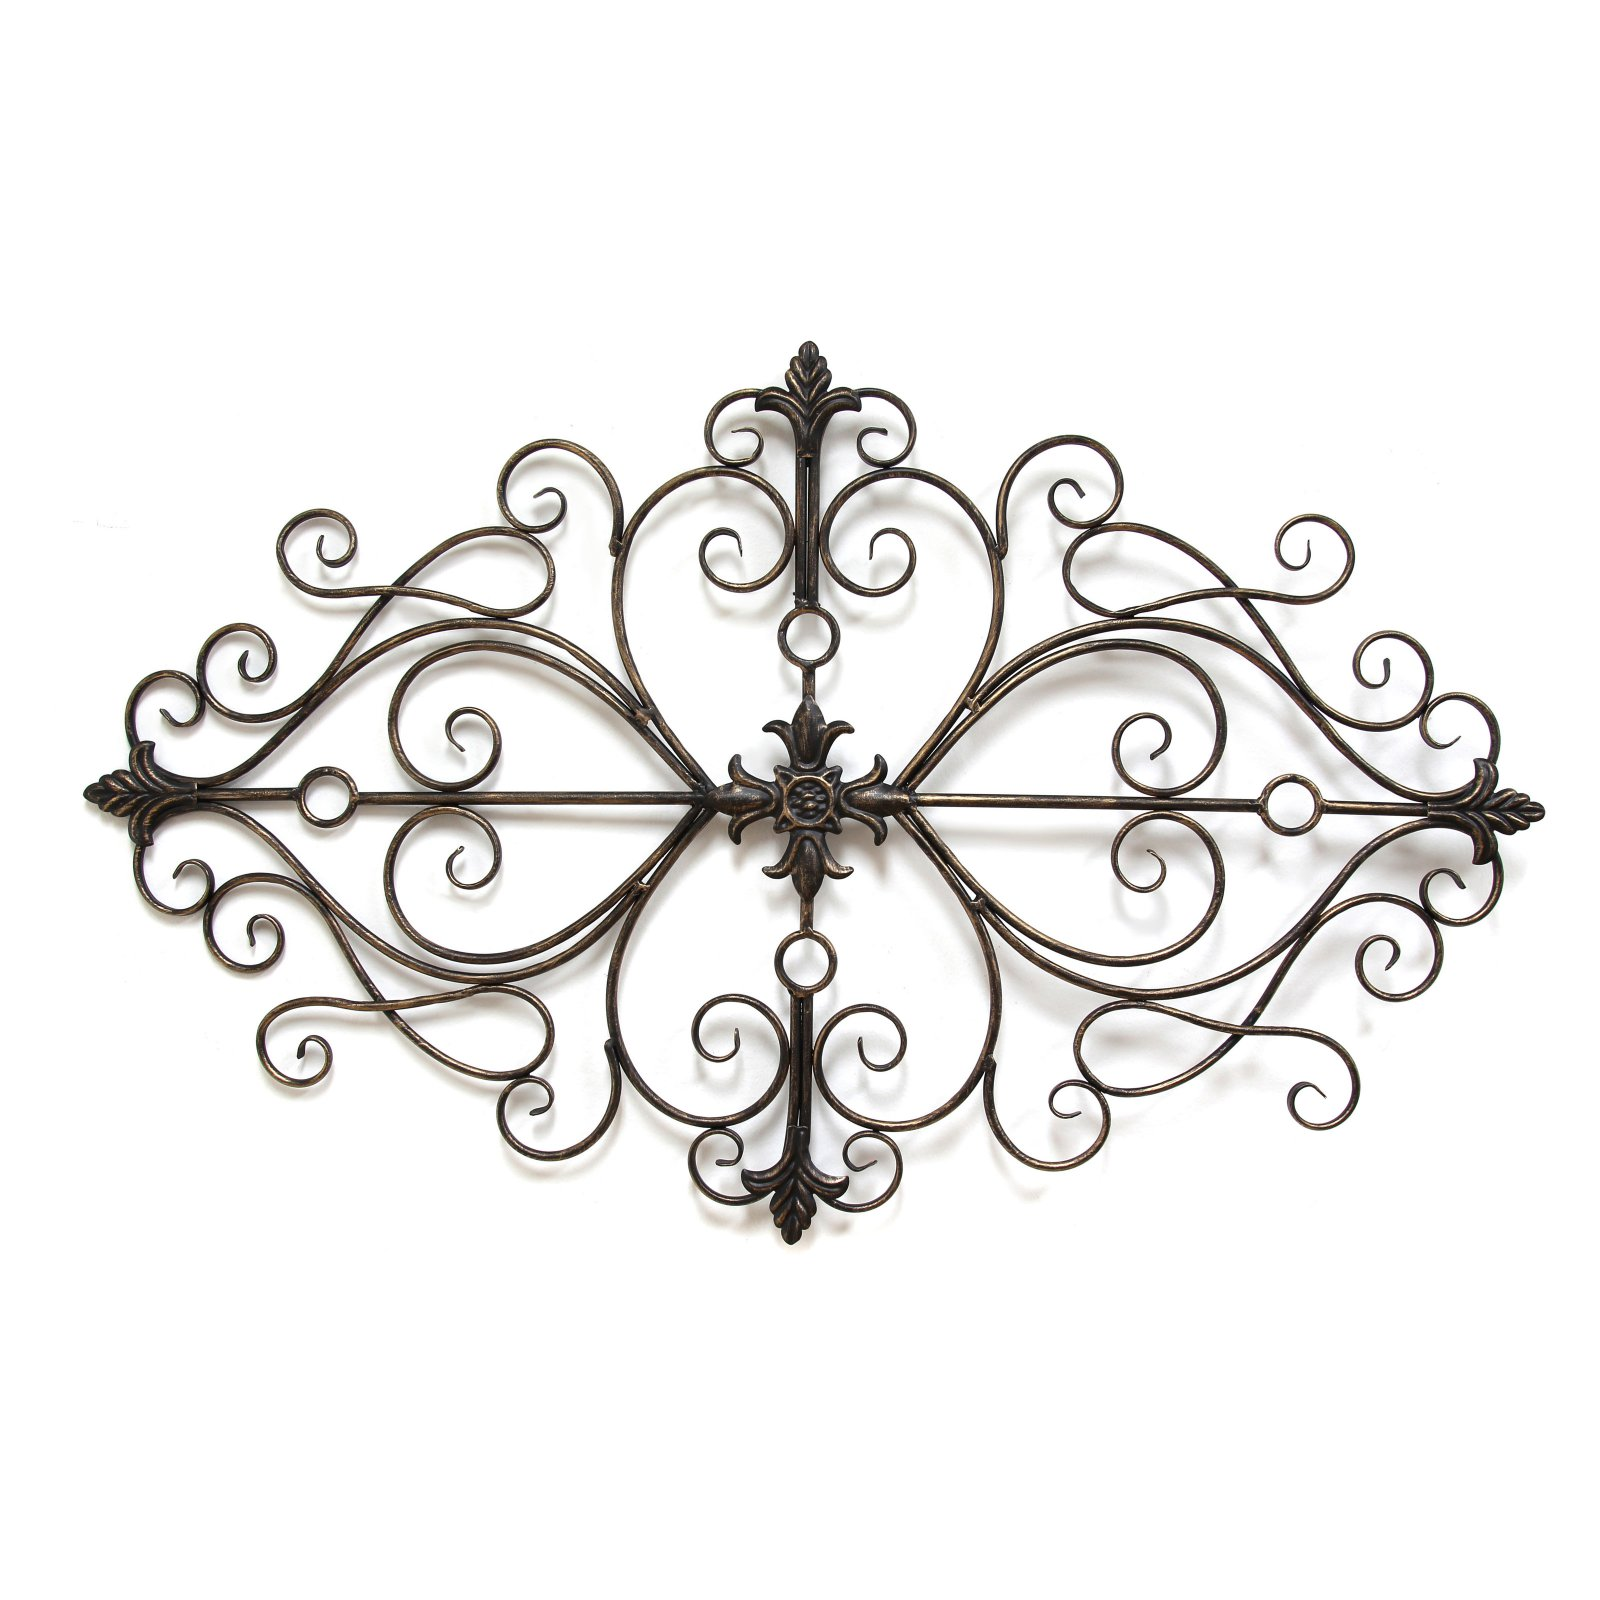 Stratton Home Decor Traditional Scroll Wall Decor by Stratton Home Decor